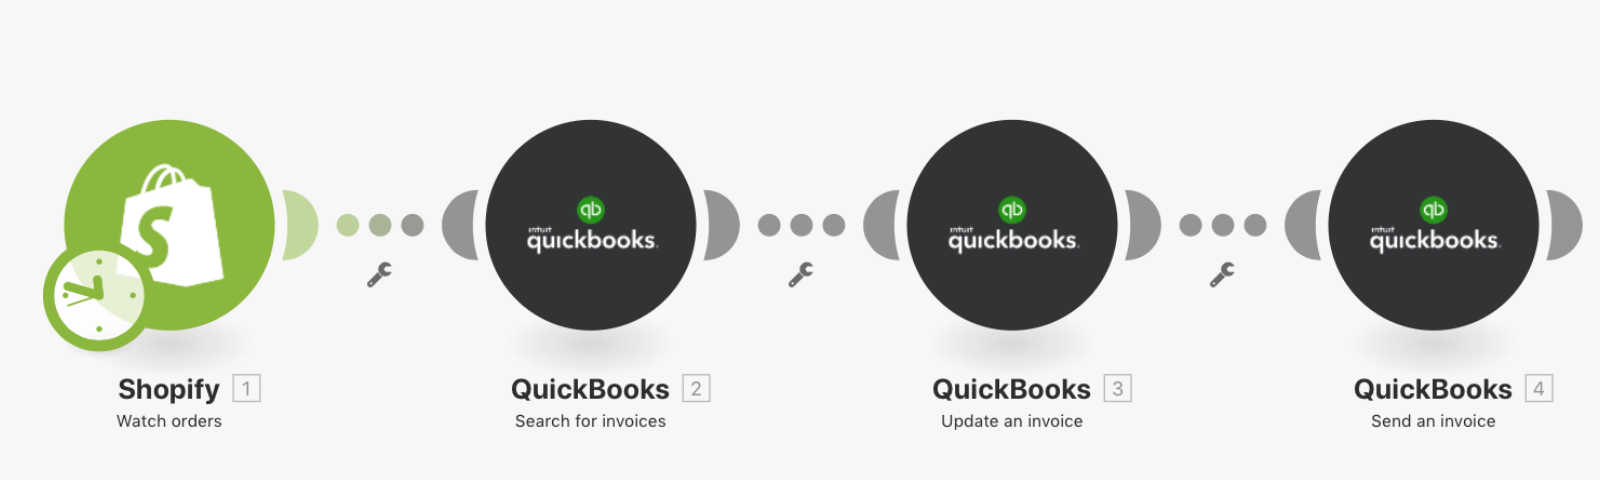 Connecting Quickbooks to Integromat - The Integromat Blog